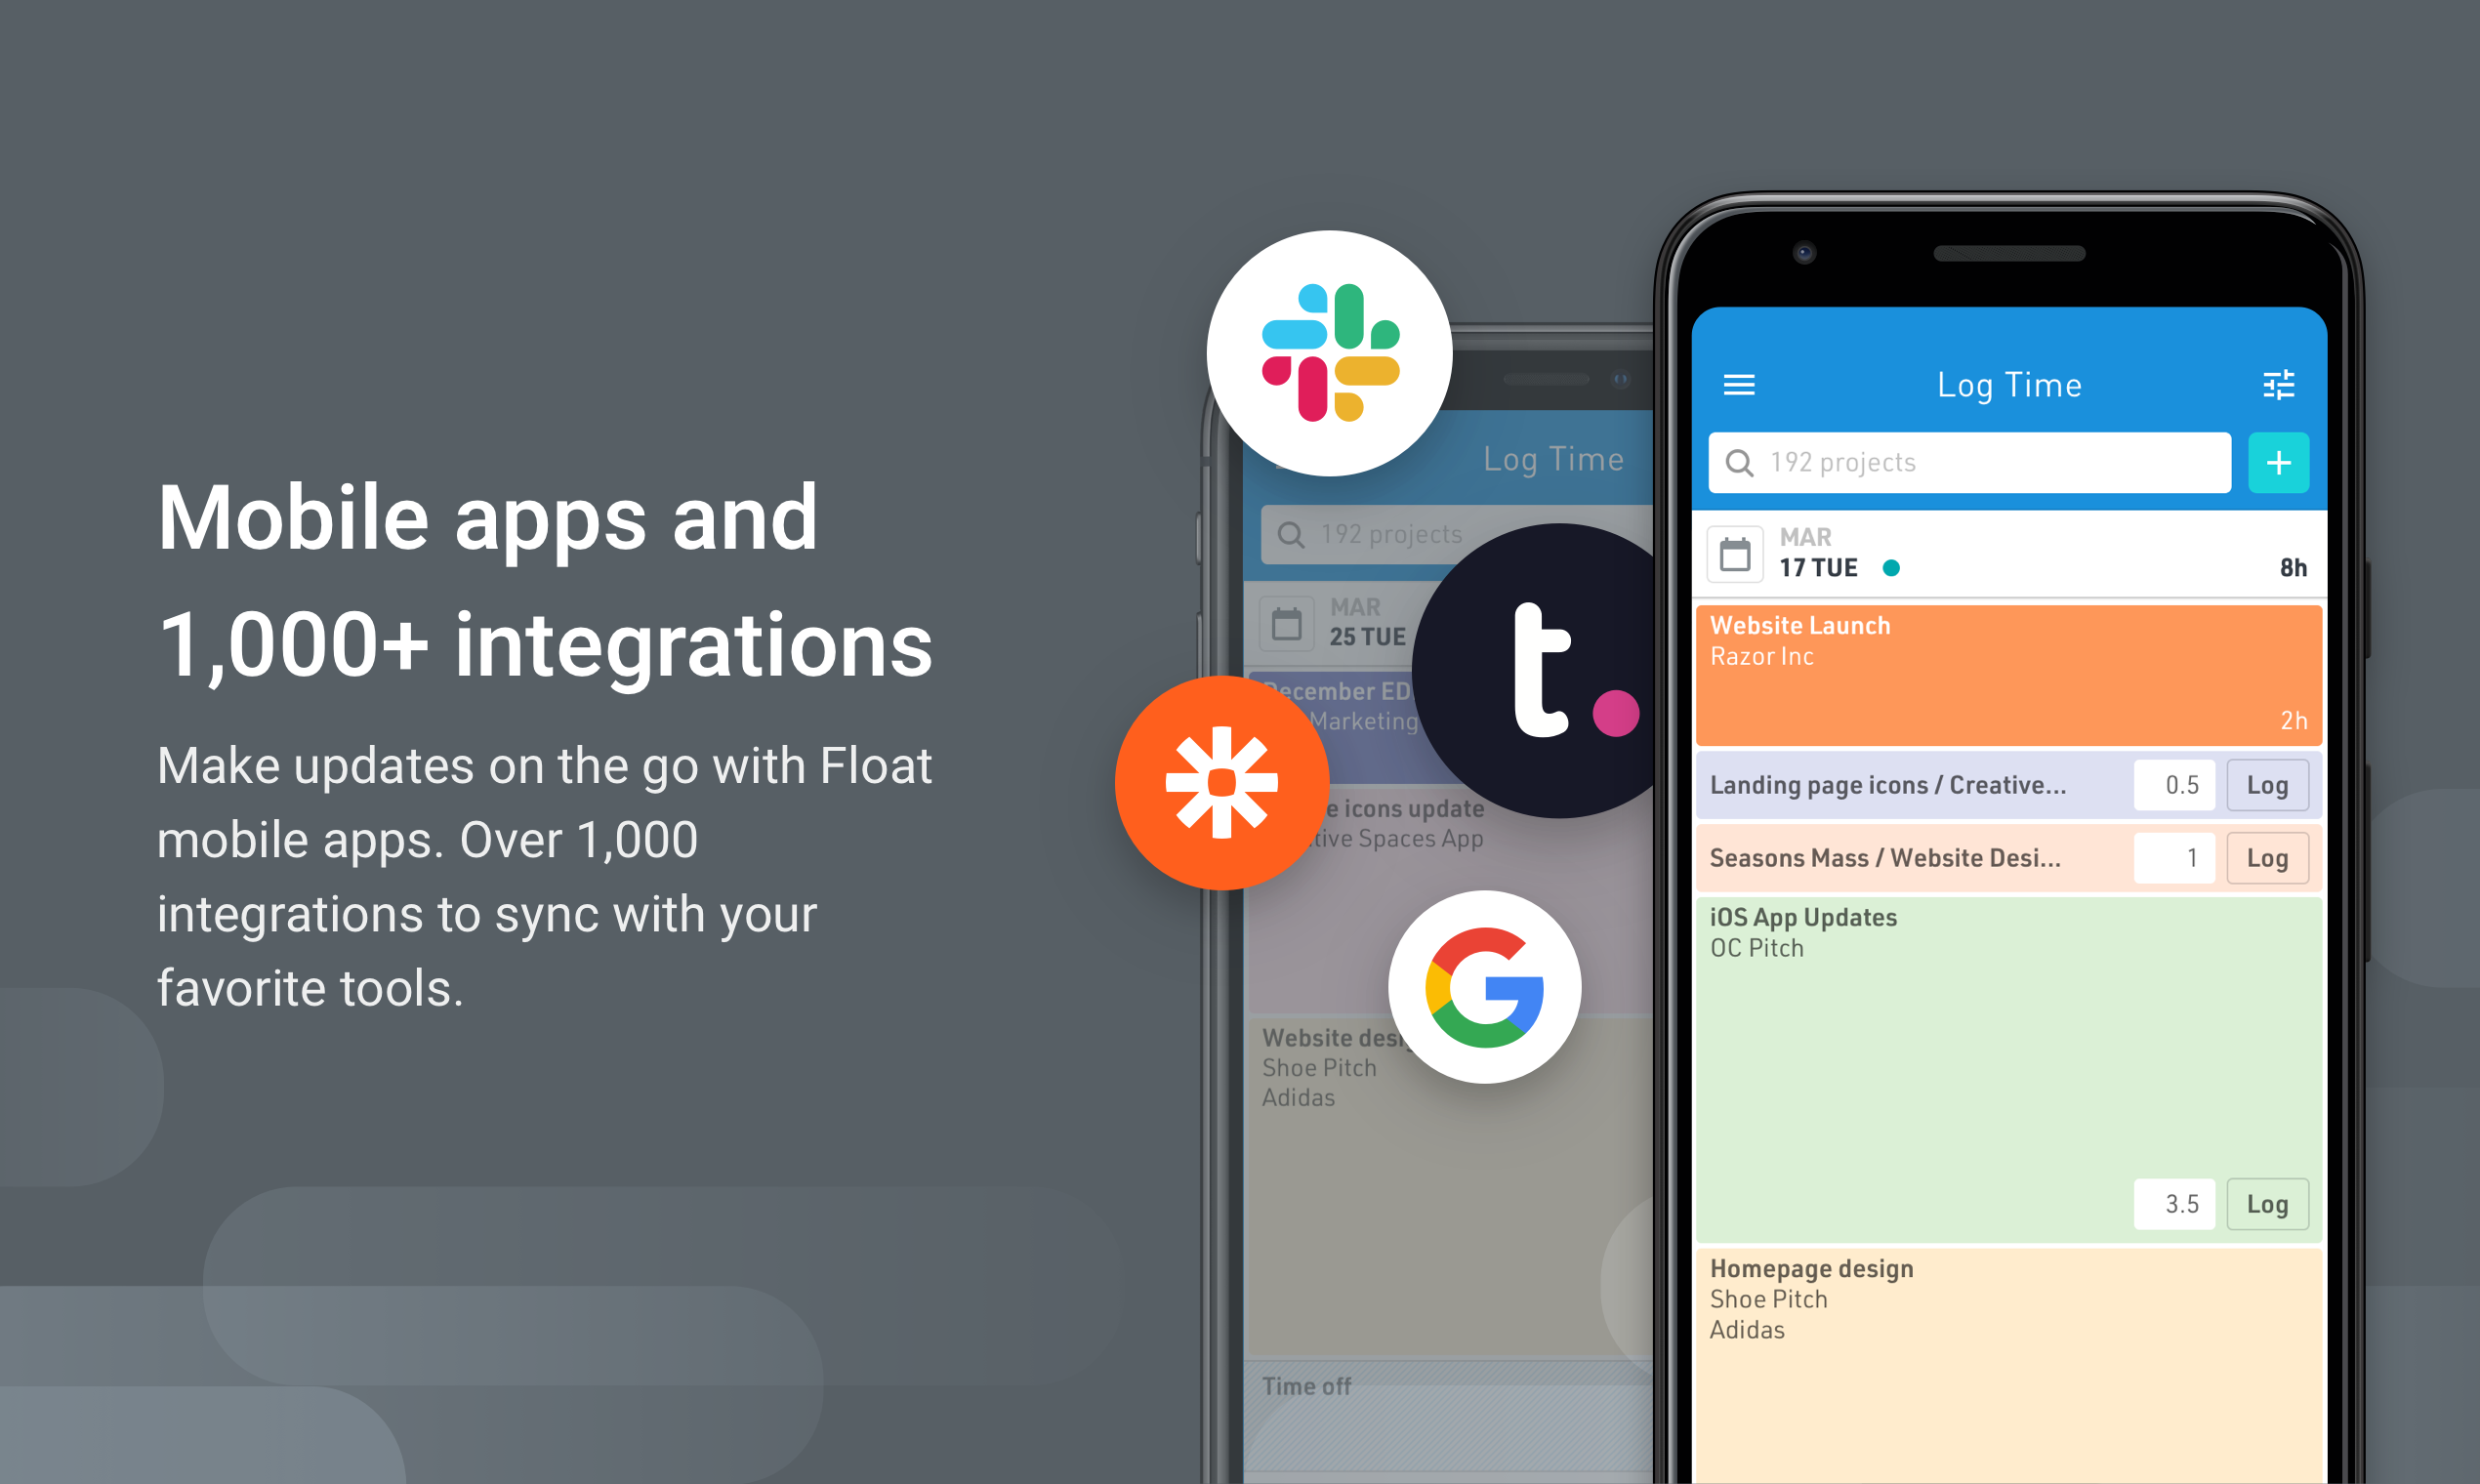 With apps for iOS & Android, you can update your schedule any time, on the go. Integrate with Slack, Google Calendar, Outlook & 1,000+ apps via Zapier to streamline your workflow.